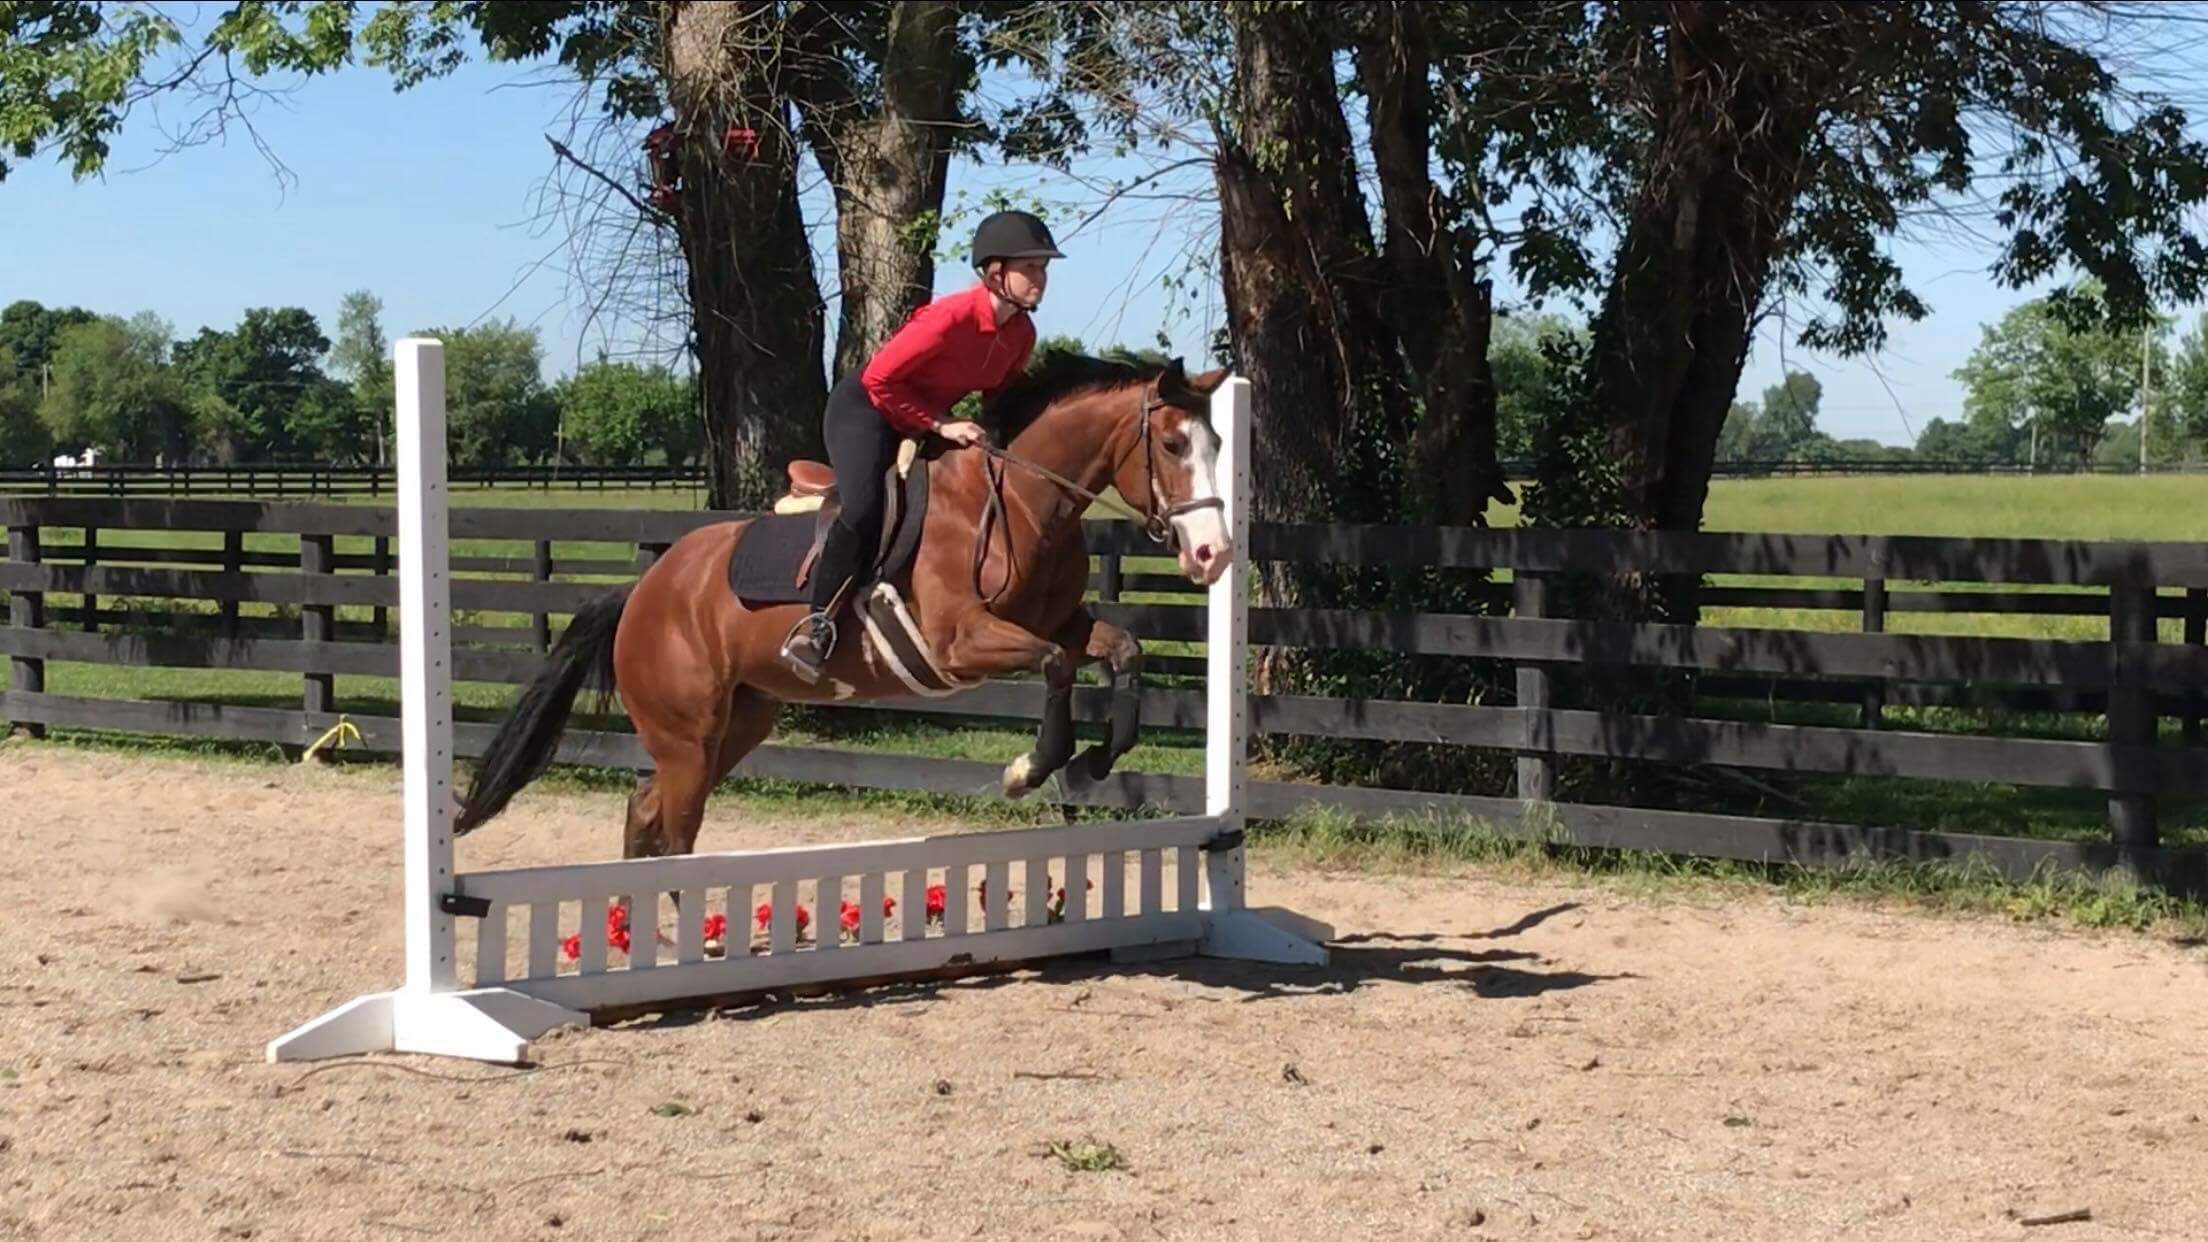 Freya - 5 year old hunter pony. 14.1 hands and appropriate for a walk-trot rider through short stirrup. Freya is available for on-site half lease. $300.00/month.